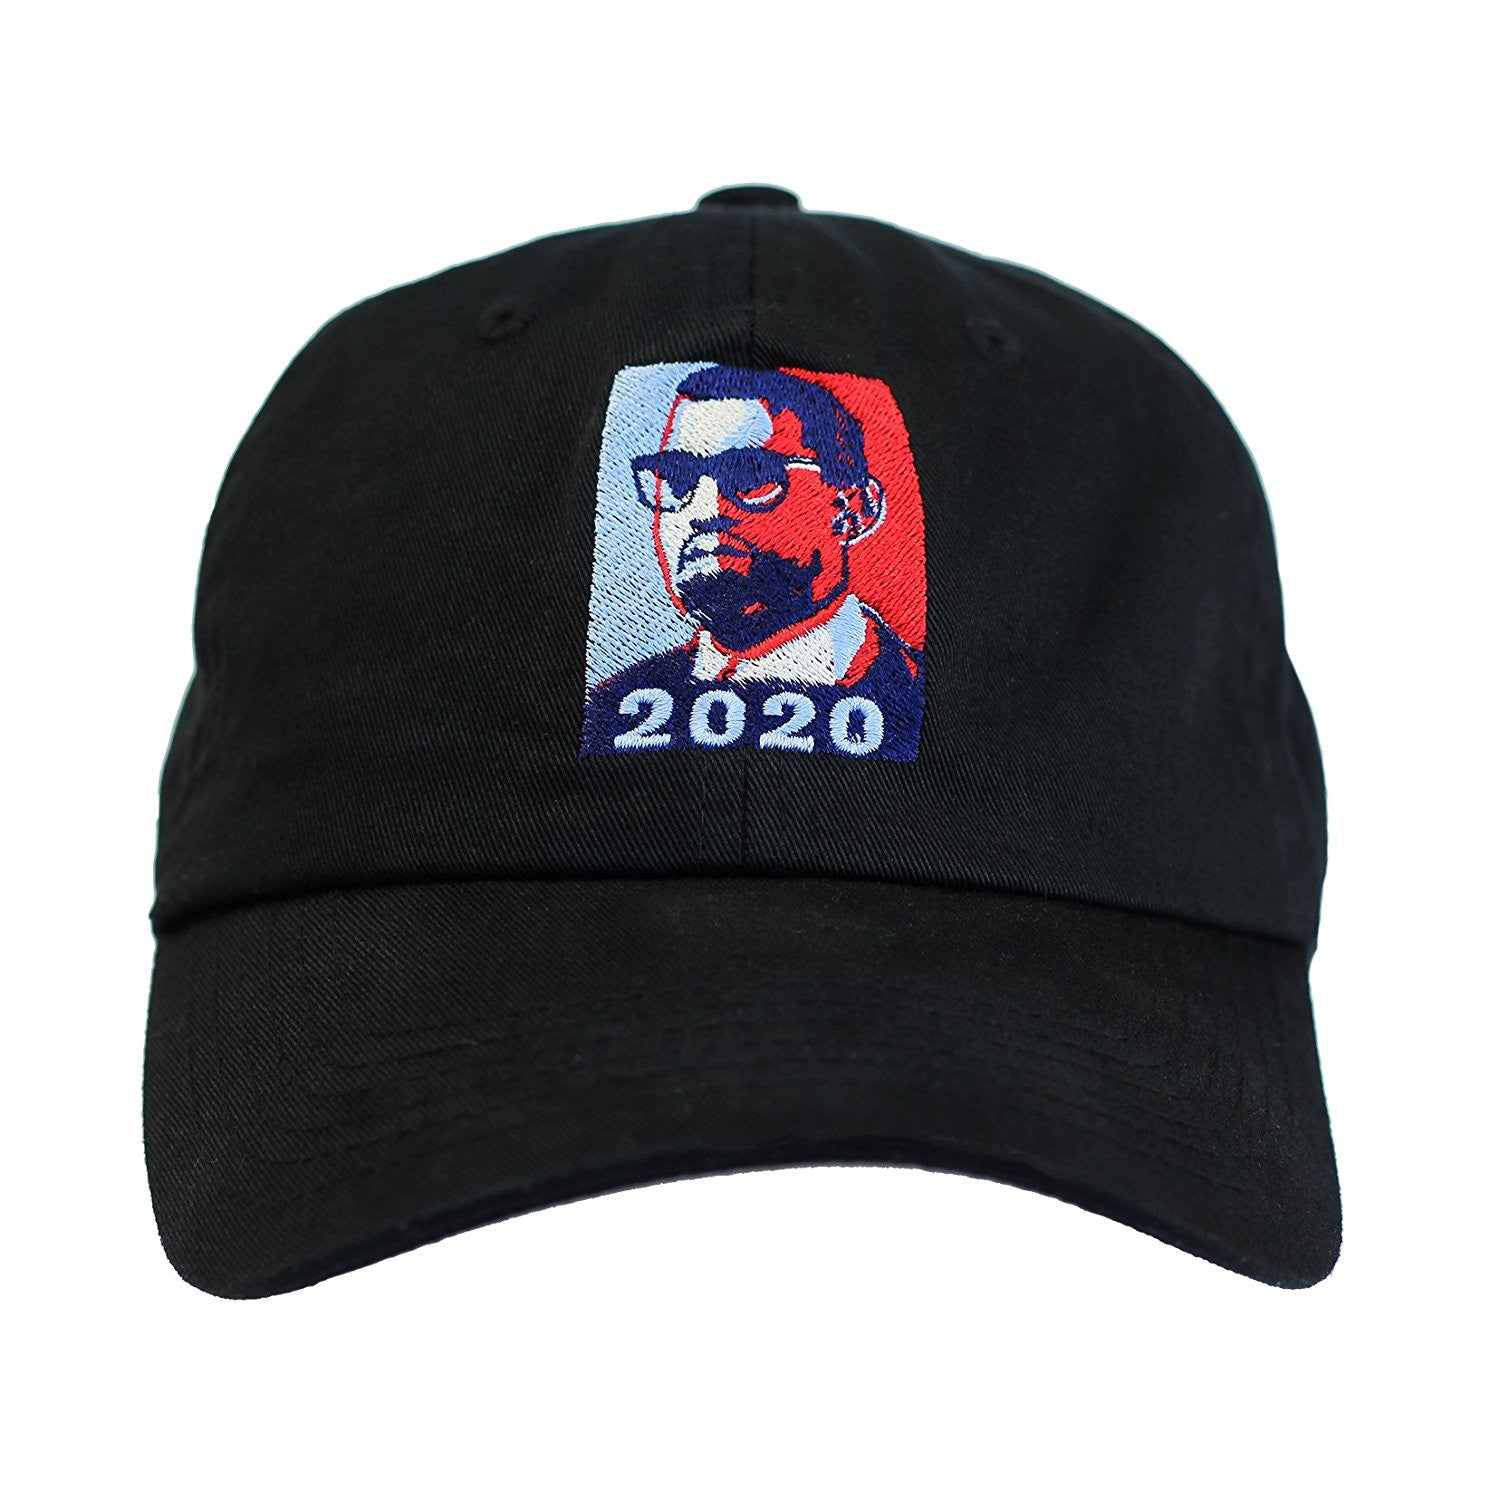 Kanye 2020 Dad Hat - Black In Twilled Cotton – NOVOLOSANGELES f429d9997e3